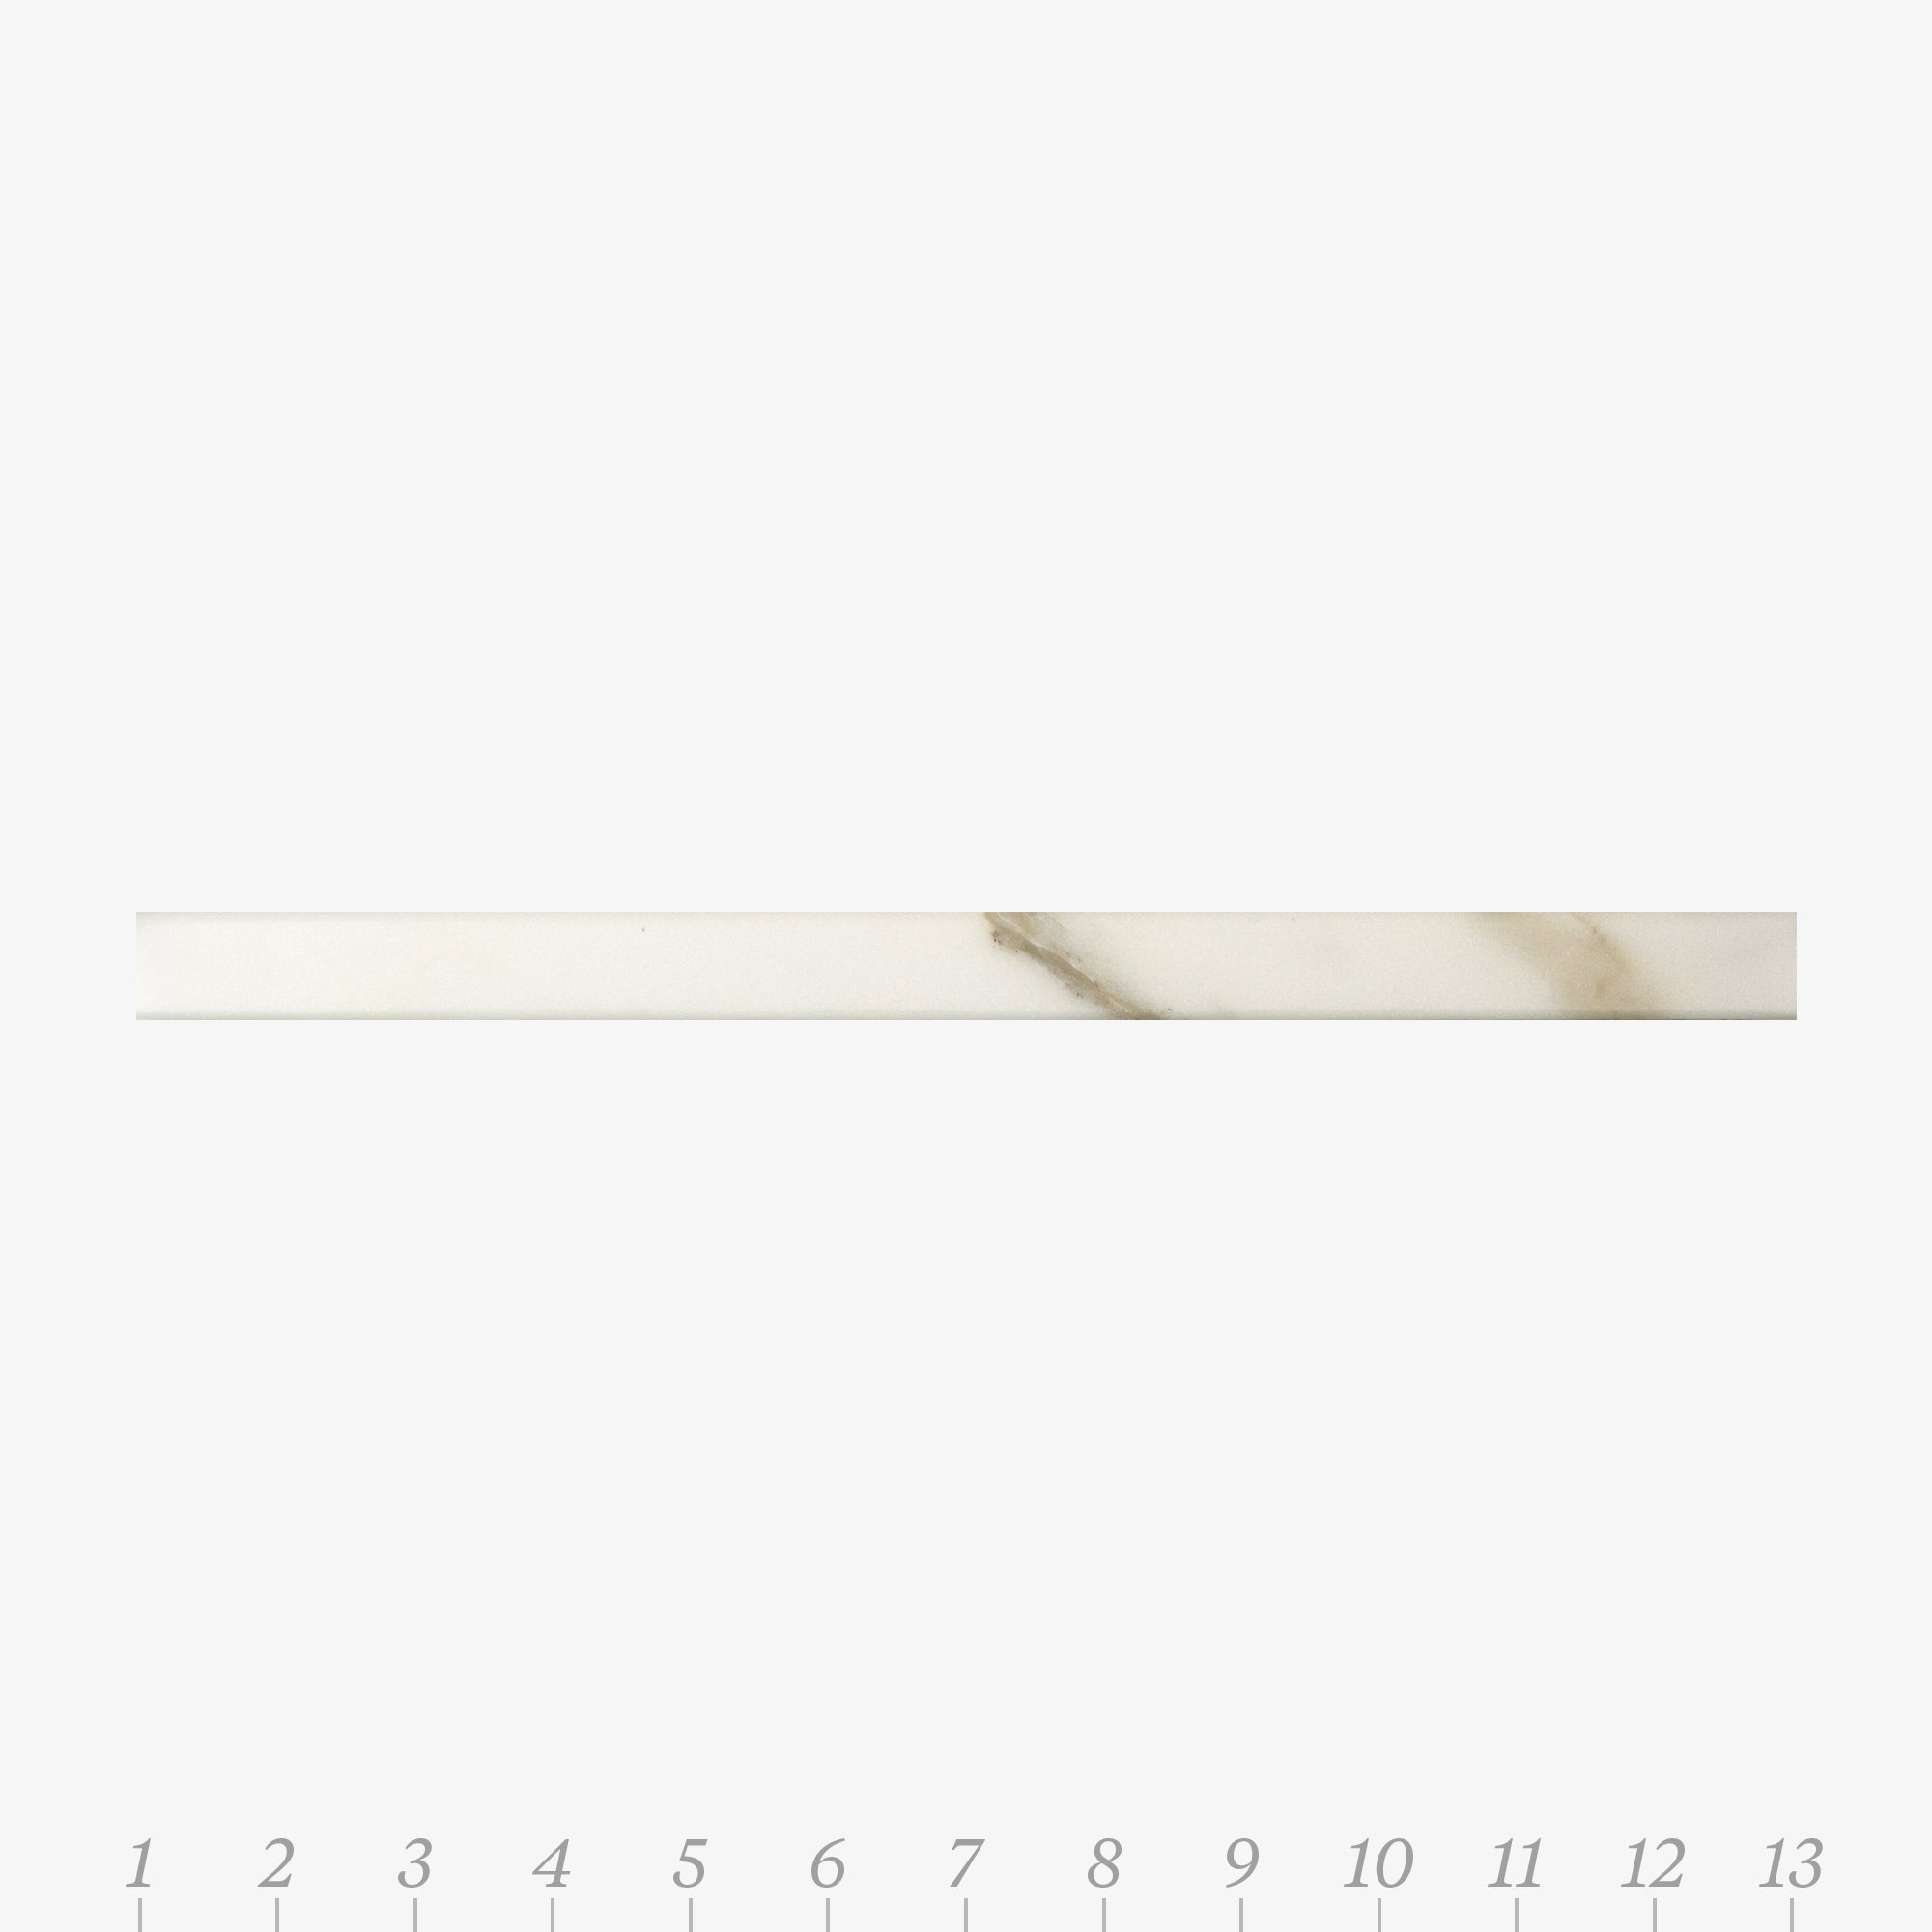 Chelsea 1 Calacatta Gold Marble Swatch Card  Polished Samples Liner product photo